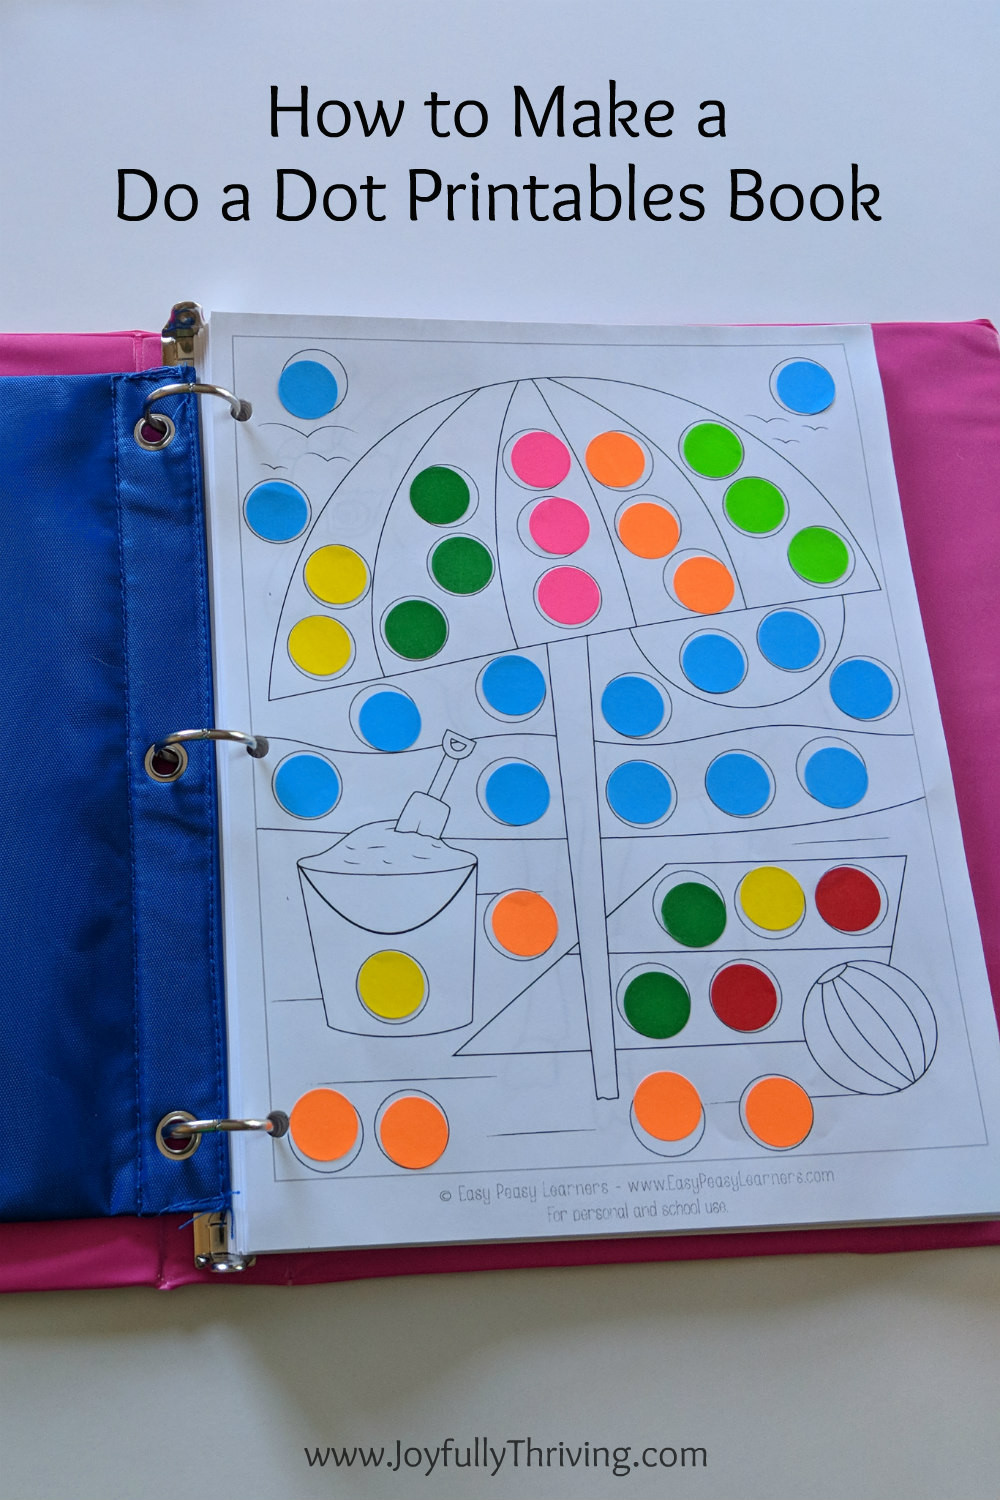 Dot to Dot Art Printables How to Make A Do A Dot Printables Book